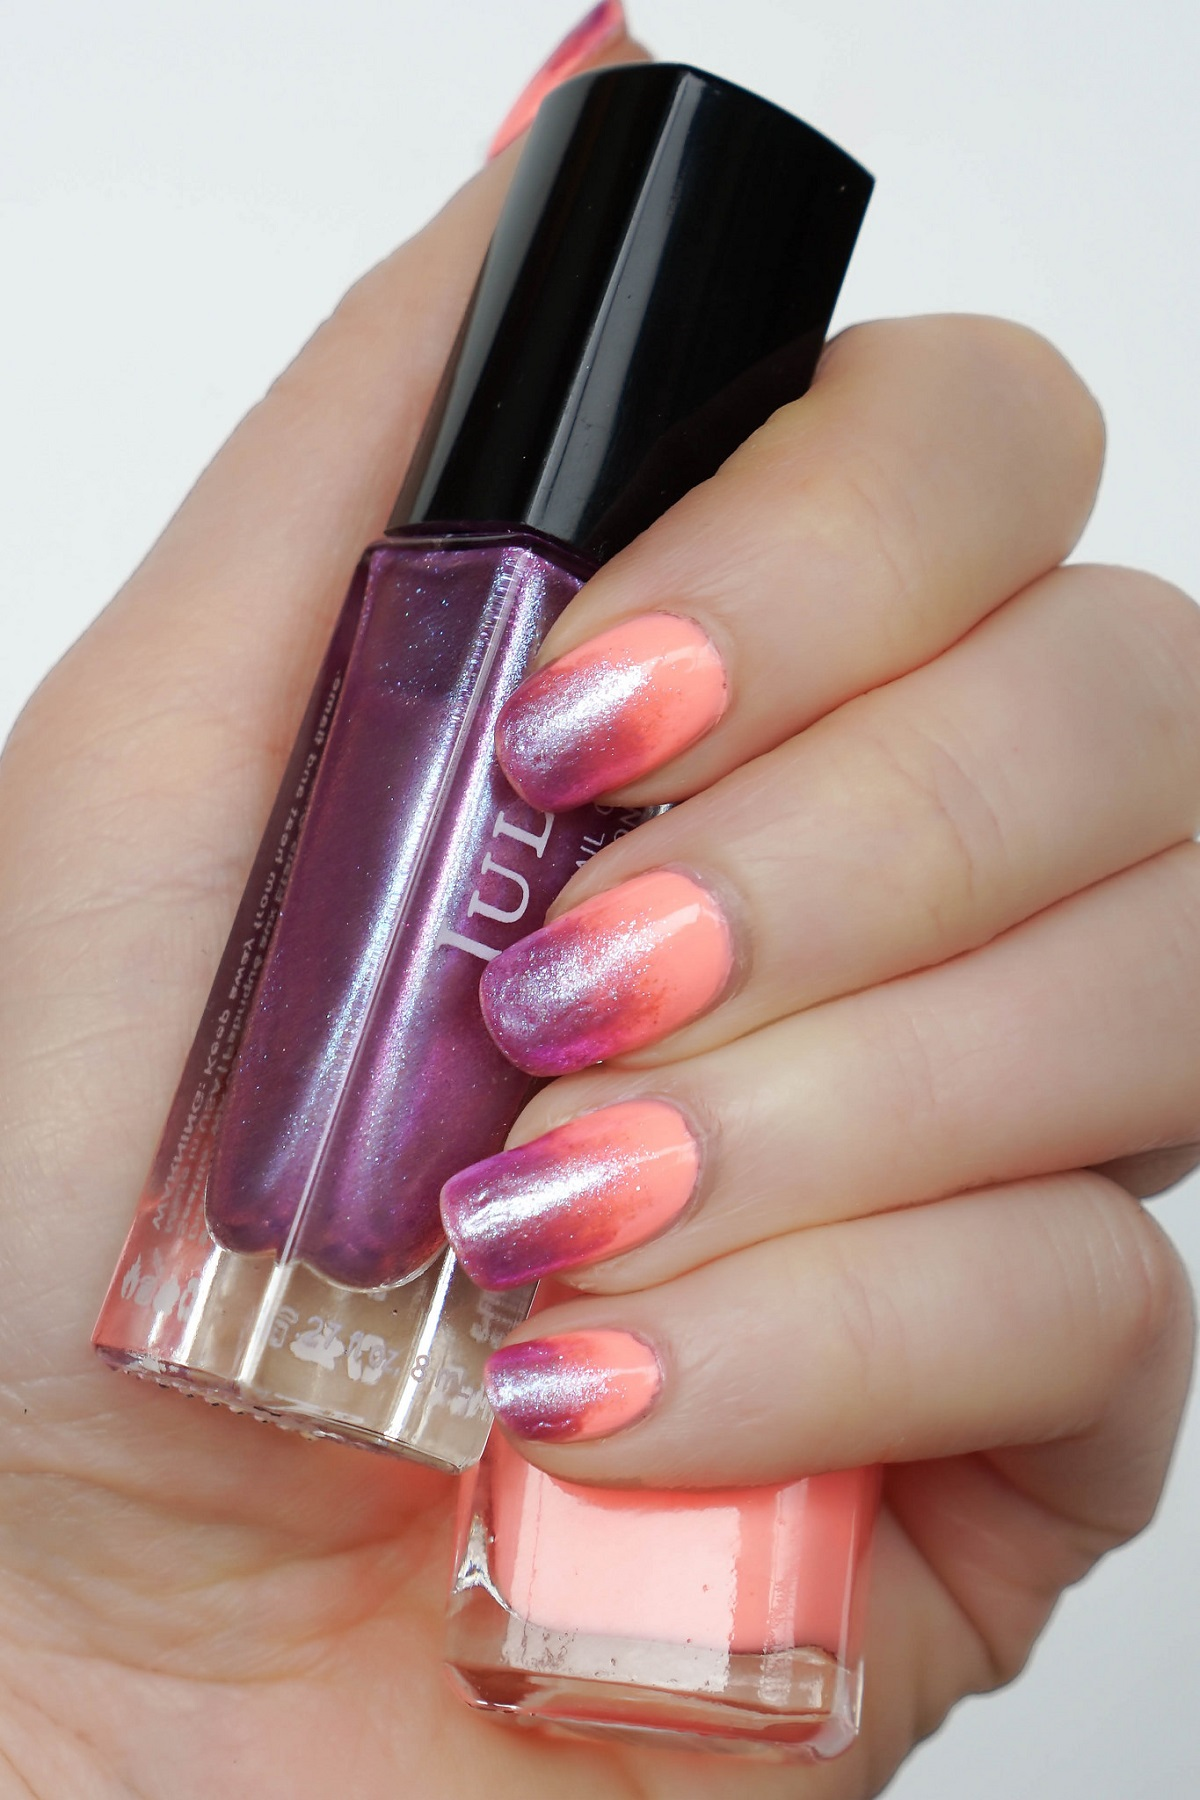 Creamsicle Orange and Iridescent Purple Gradient Manicure